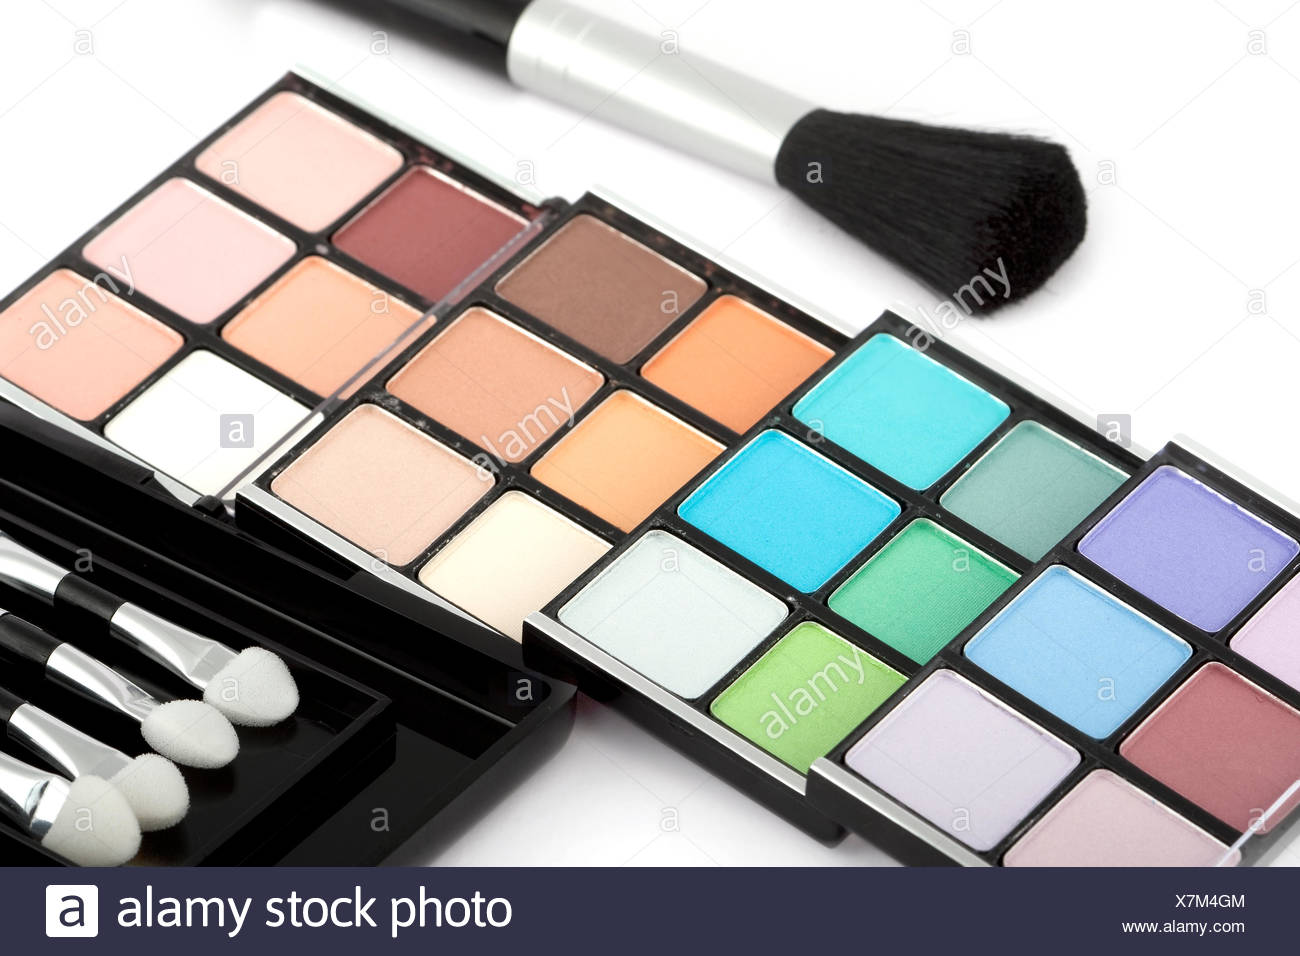 cosmetics for making up the eyes - Stock Image